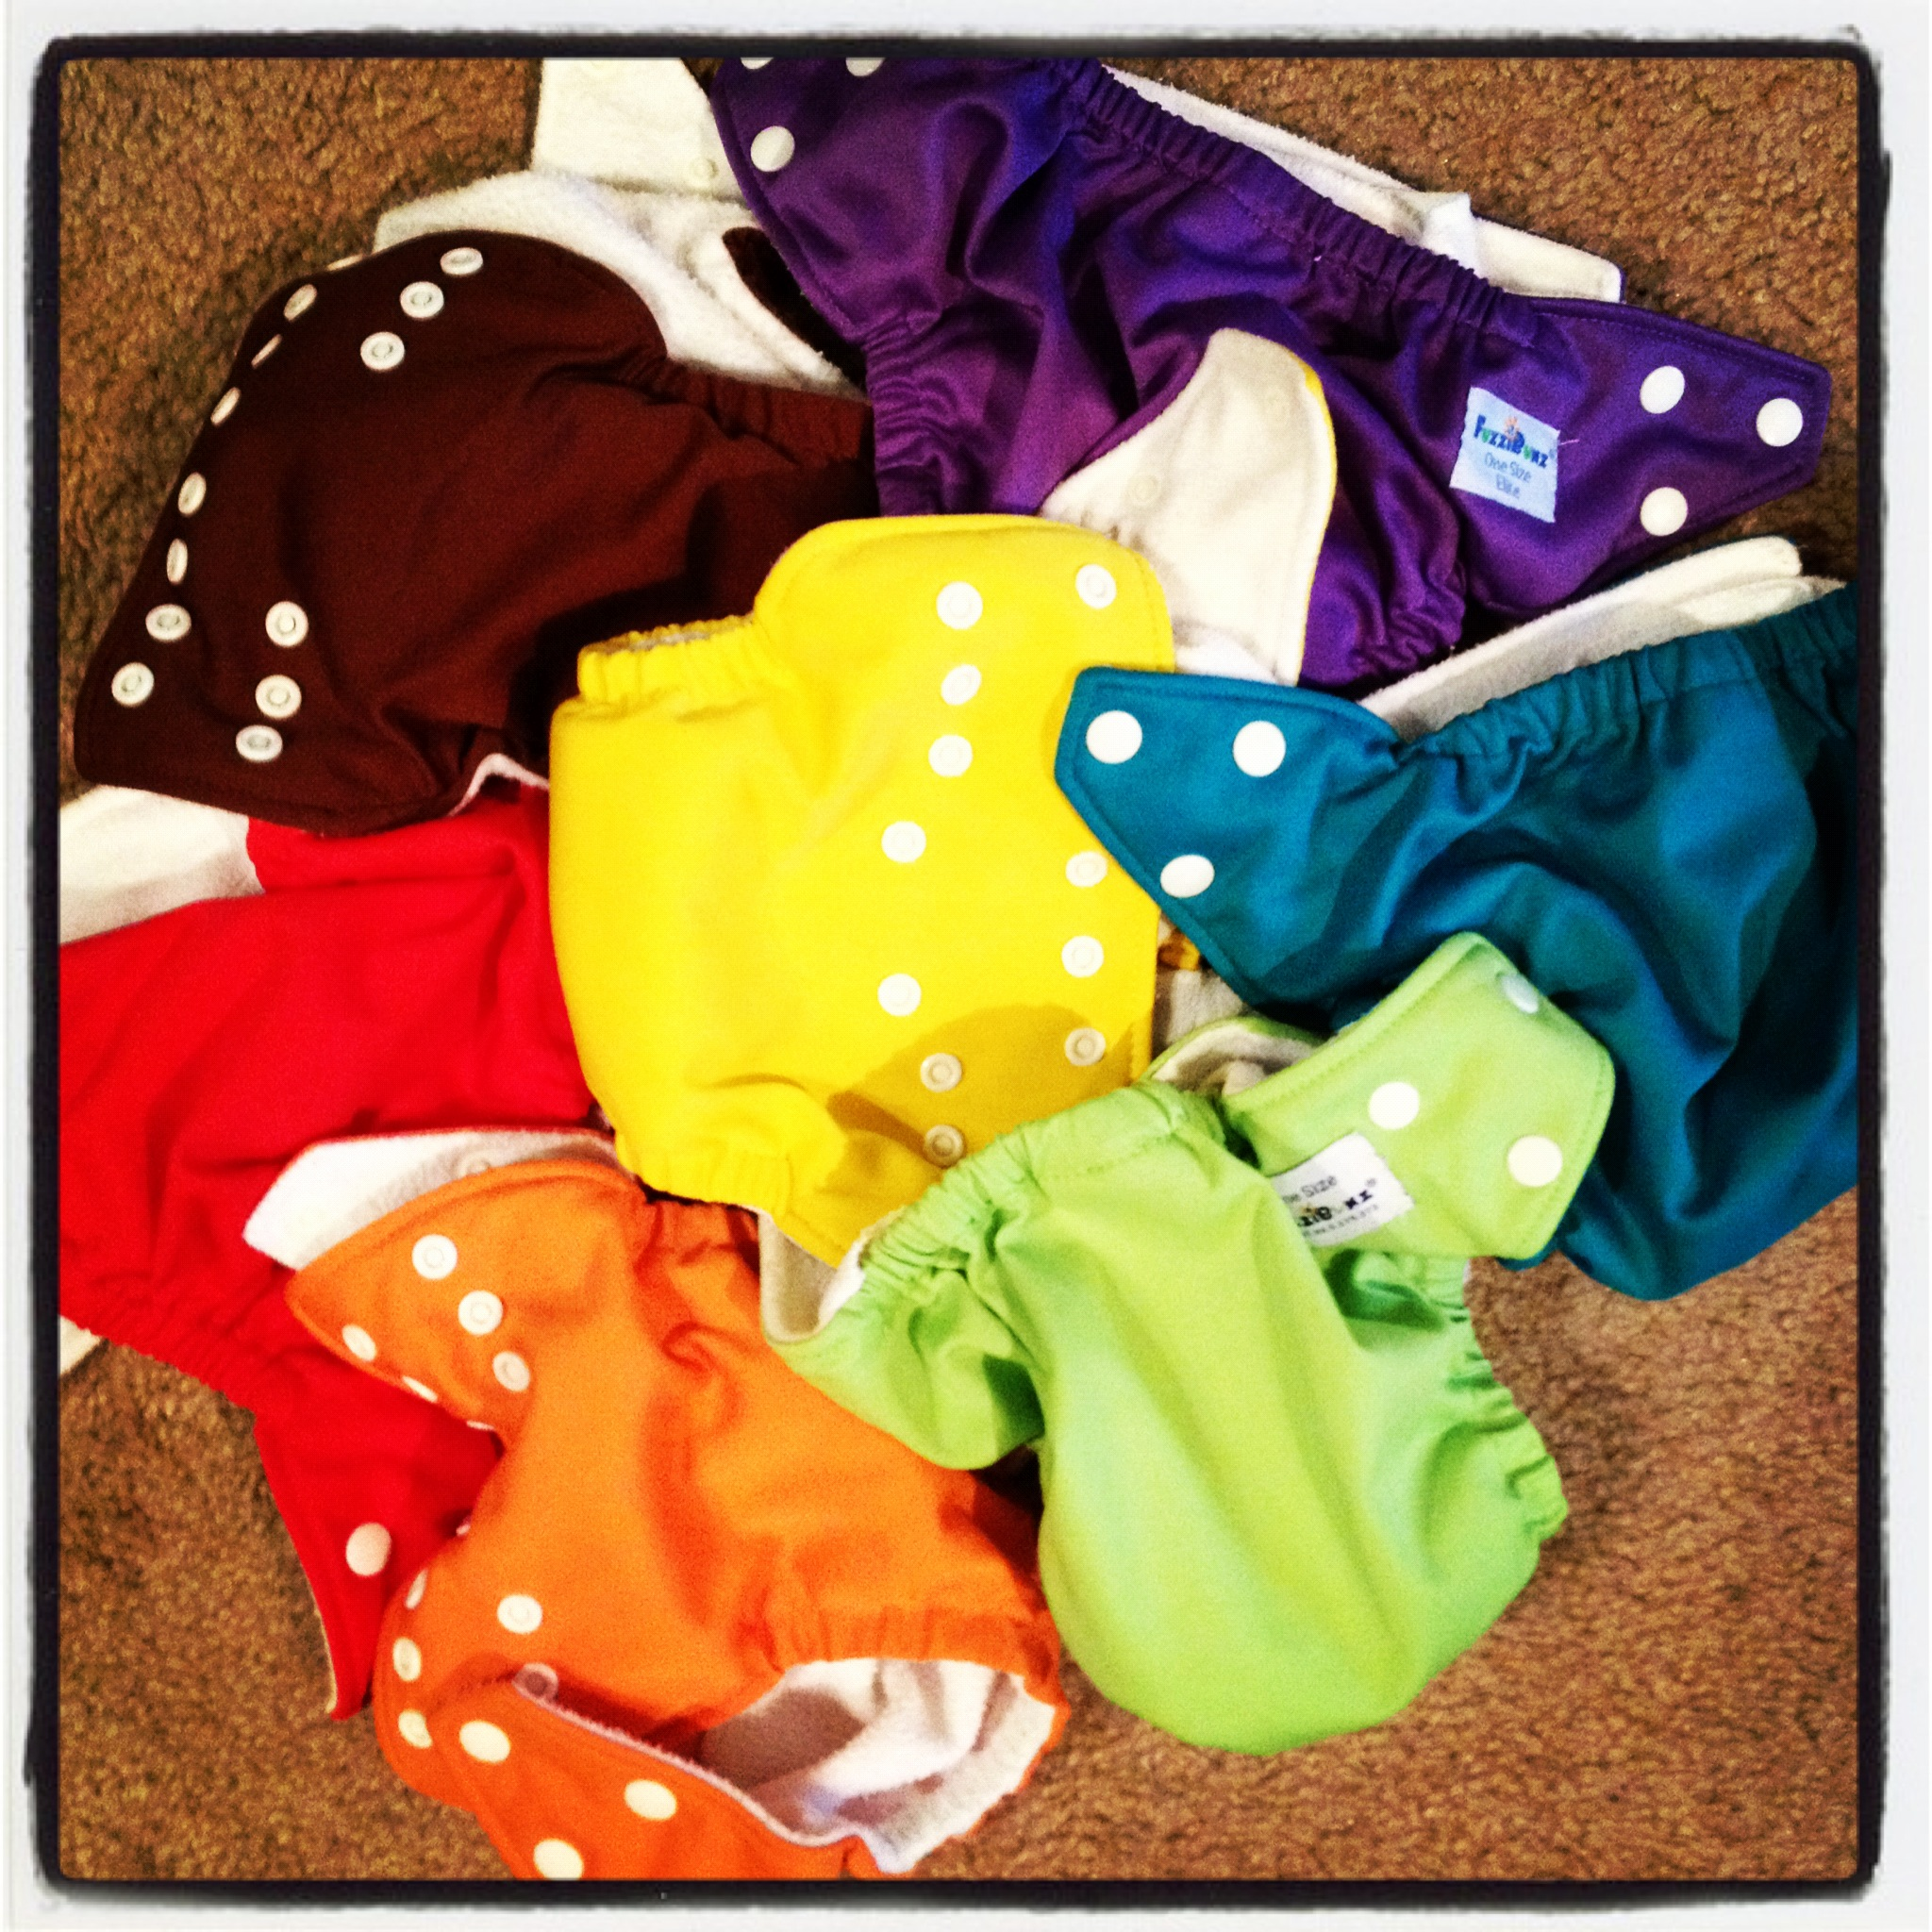 Wednesday by Leah: Cloth Diapering